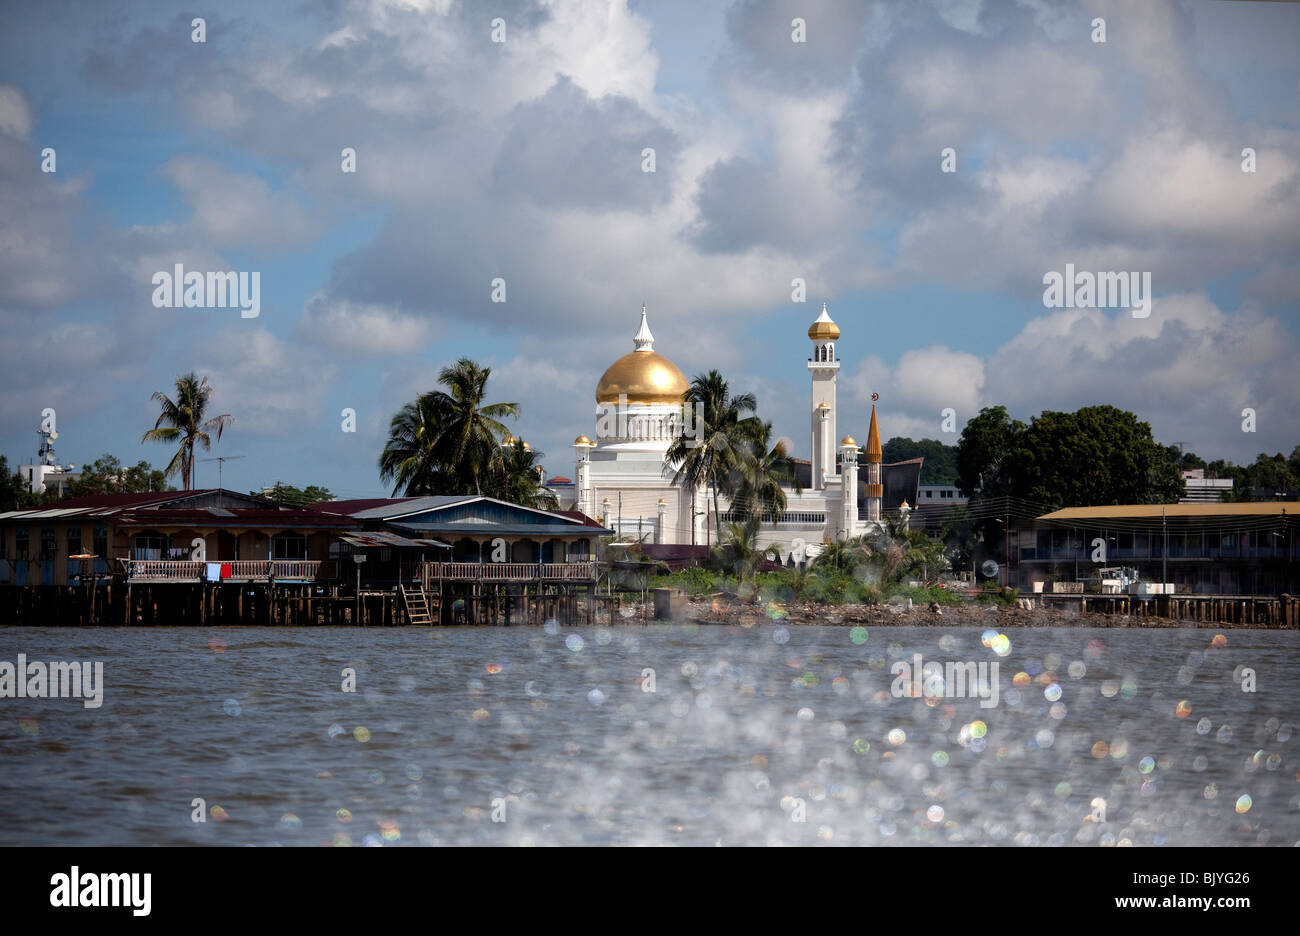 Bandar Seri Begawan Brunei upriver showing the Sultans Palace on fast water boat. - Stock Image